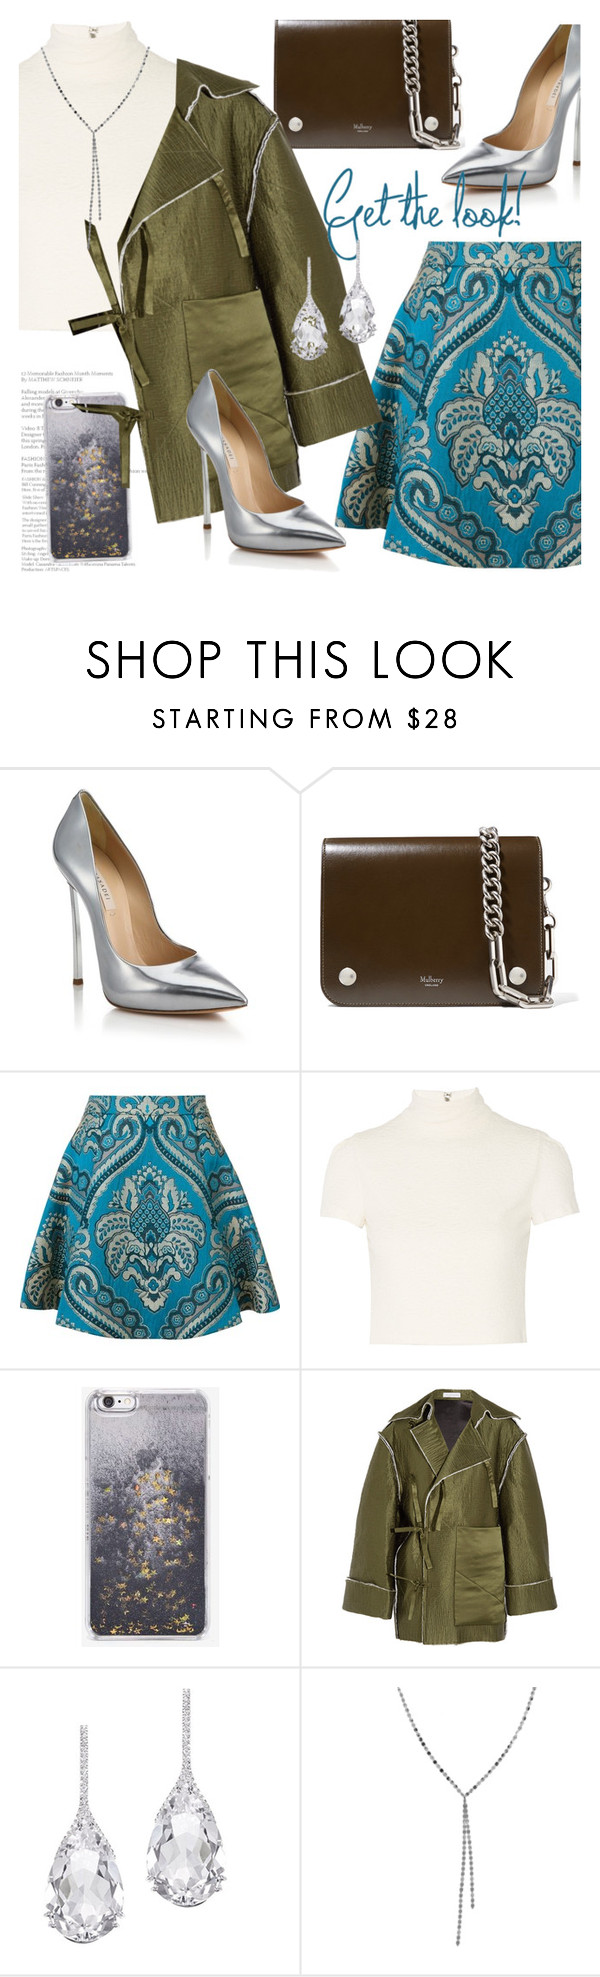 """""""BA123: The moment we make"""" by bugatti-veyron ❤ liked on Polyvore featuring Casadei, Alice + Olivia, Skinnydip, J.W. Anderson, Plukka and Lana"""